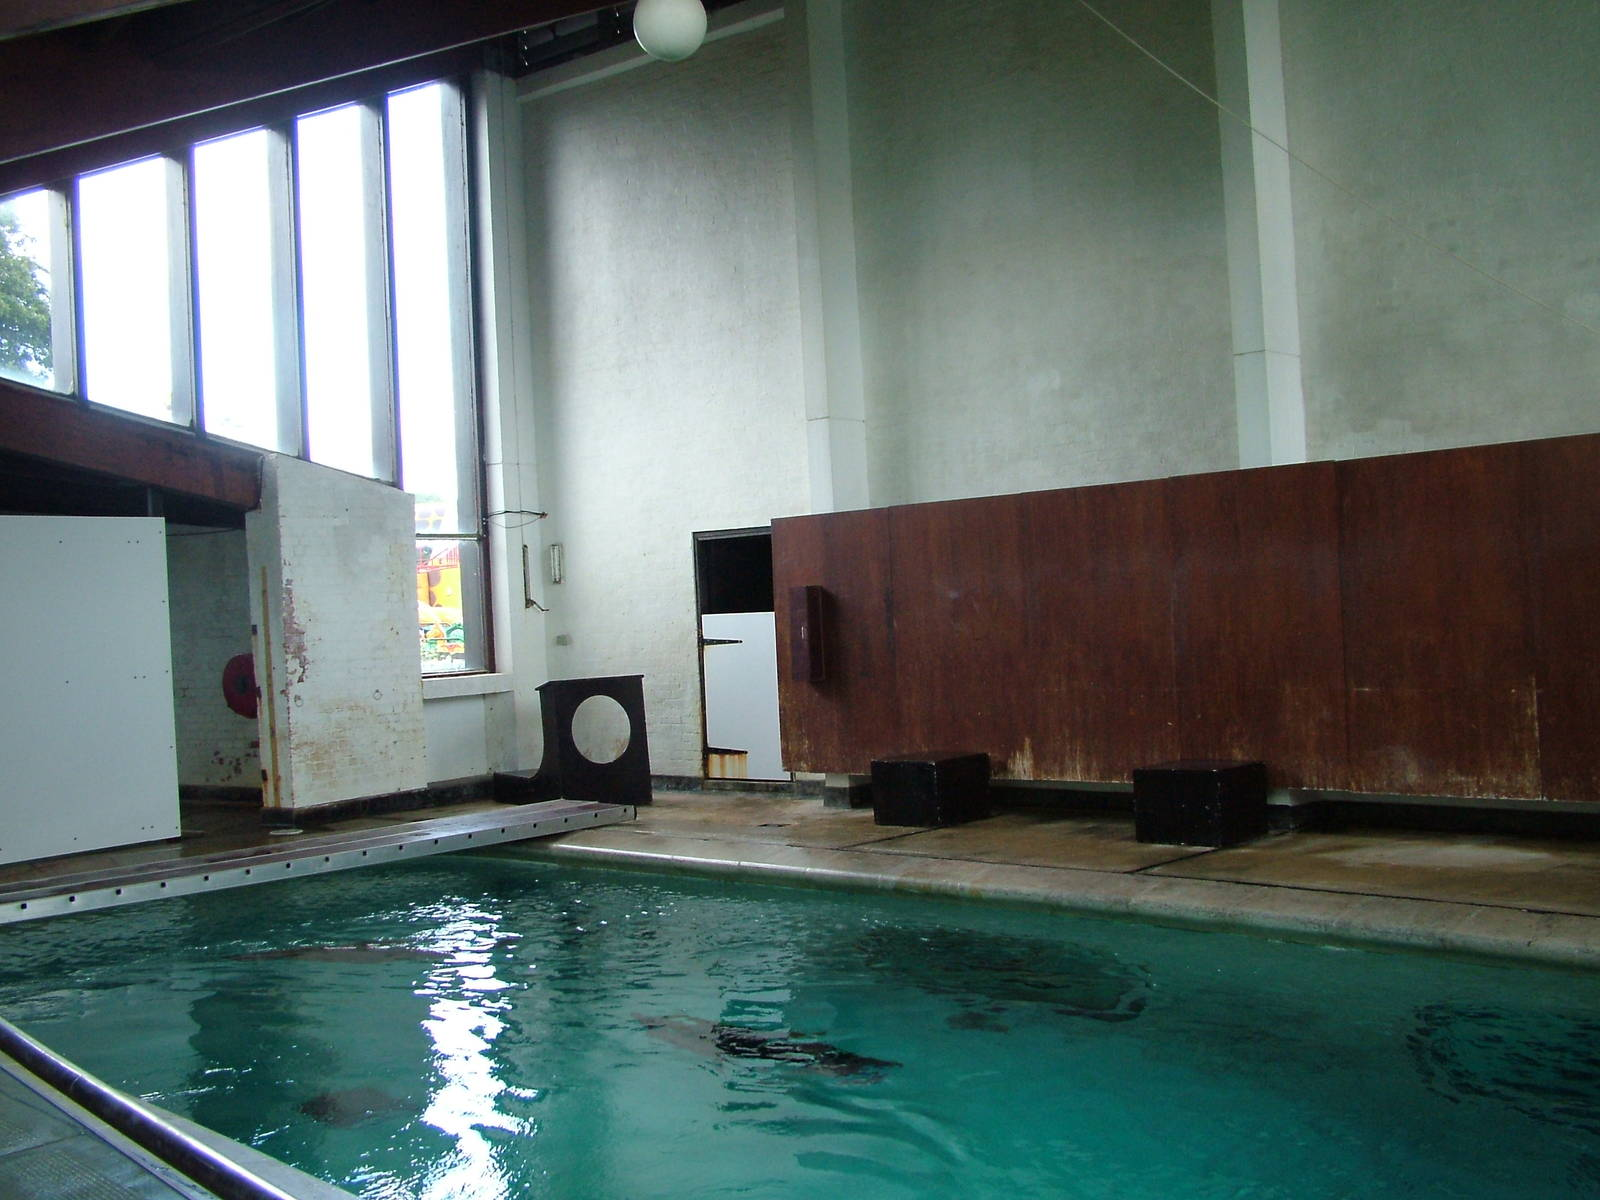 Indoor sealion pool at whipsnade 20 06 09 zoochat for Pool man show